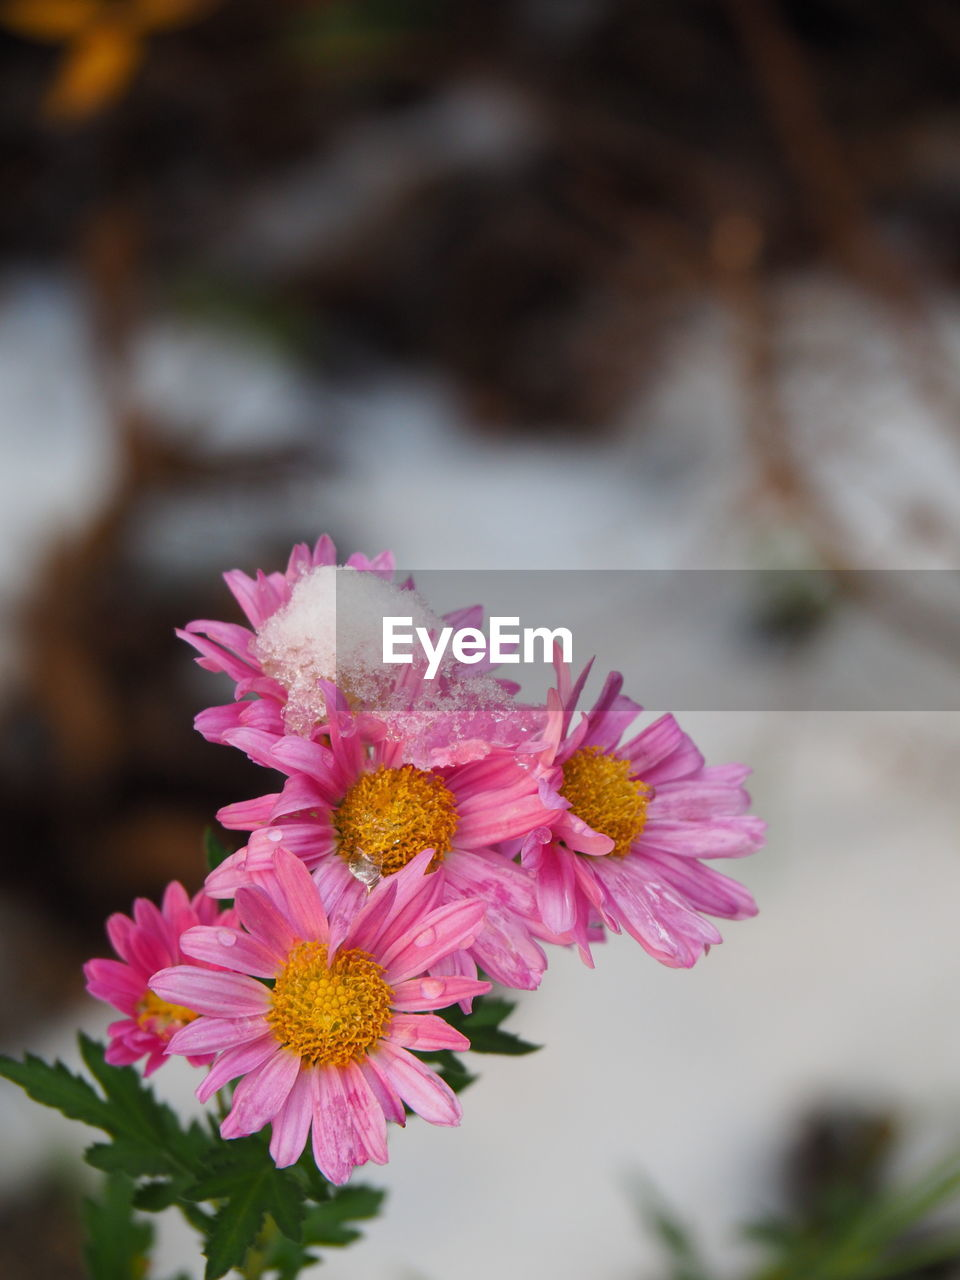 flower, beauty in nature, petal, fragility, nature, freshness, pink color, flower head, plant, focus on foreground, close-up, no people, growth, outdoors, blooming, day